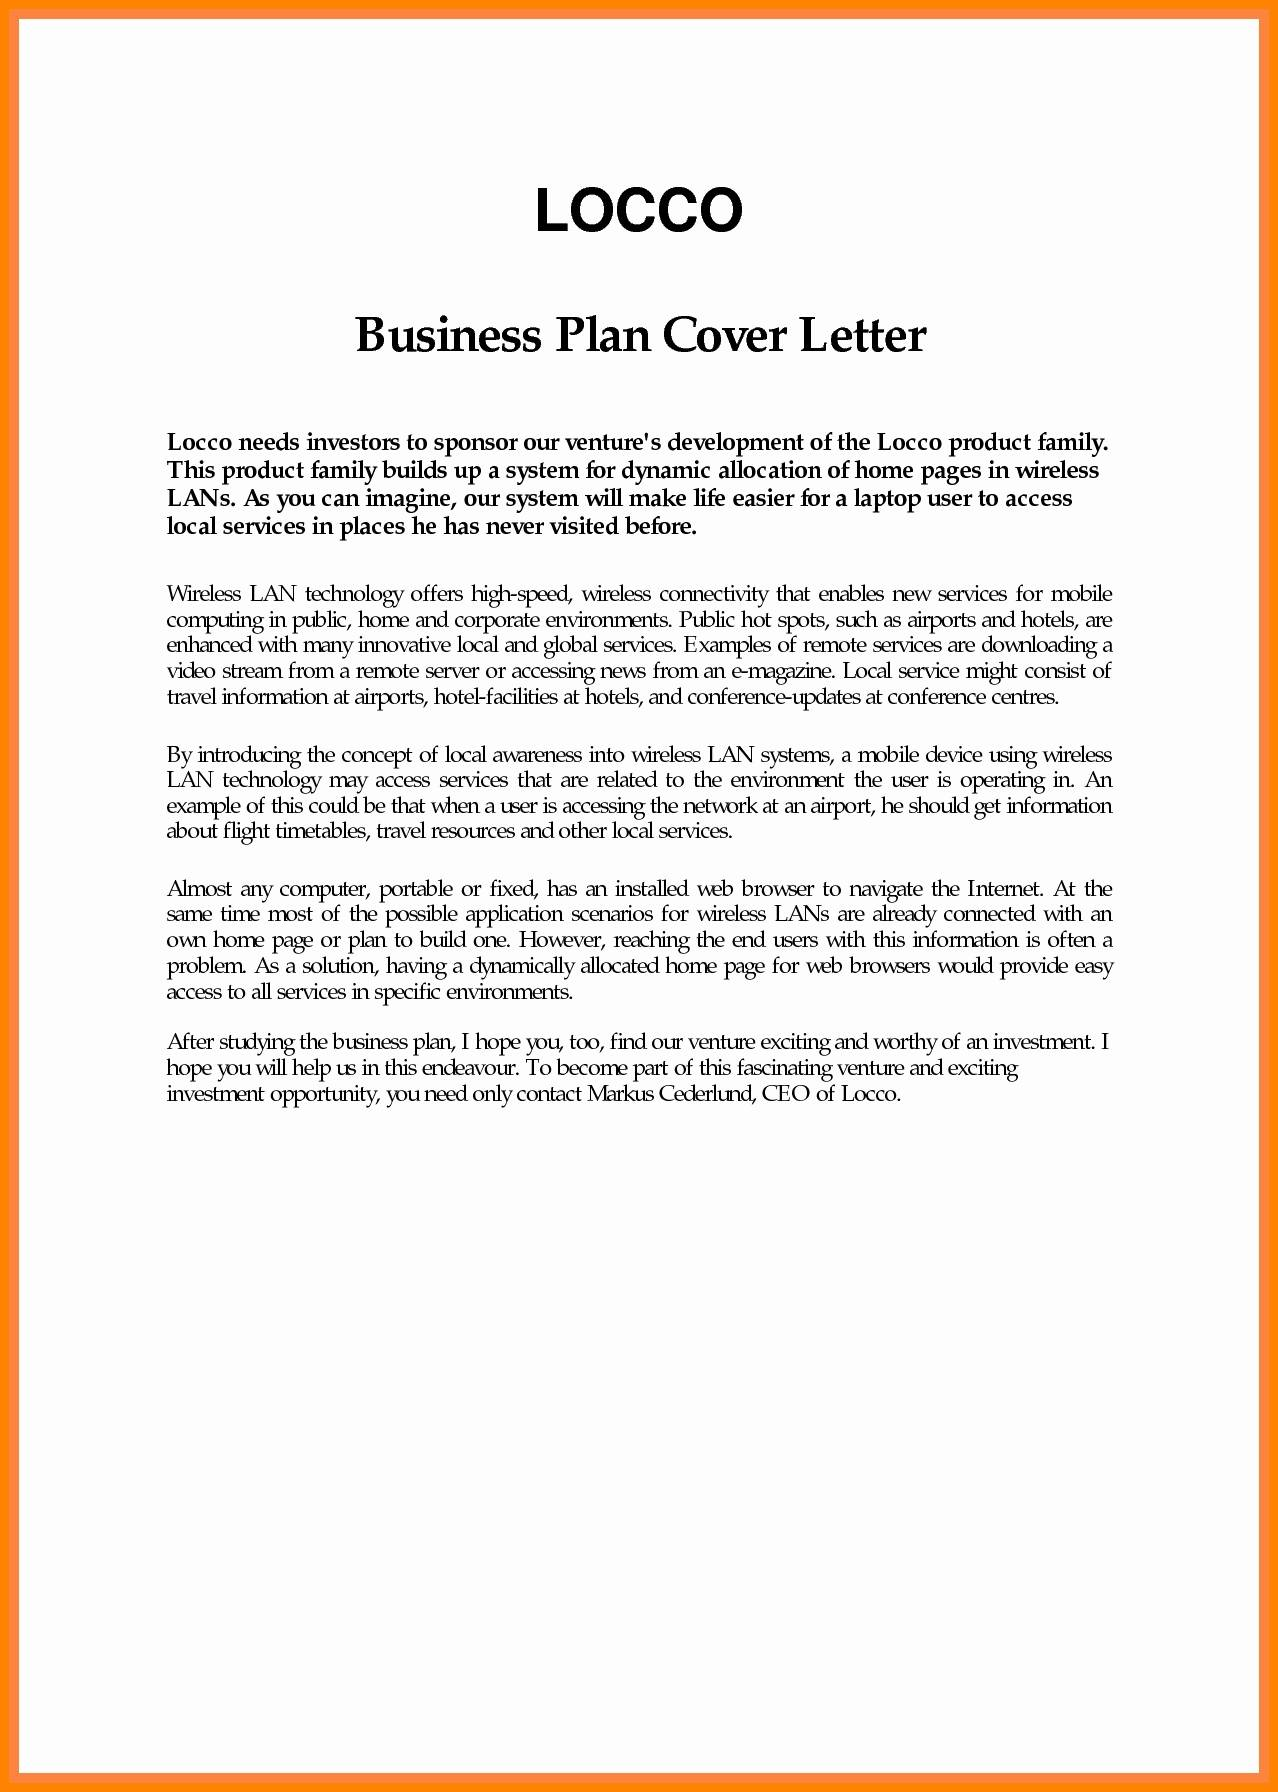 Massage Therapy Business Plan Samples